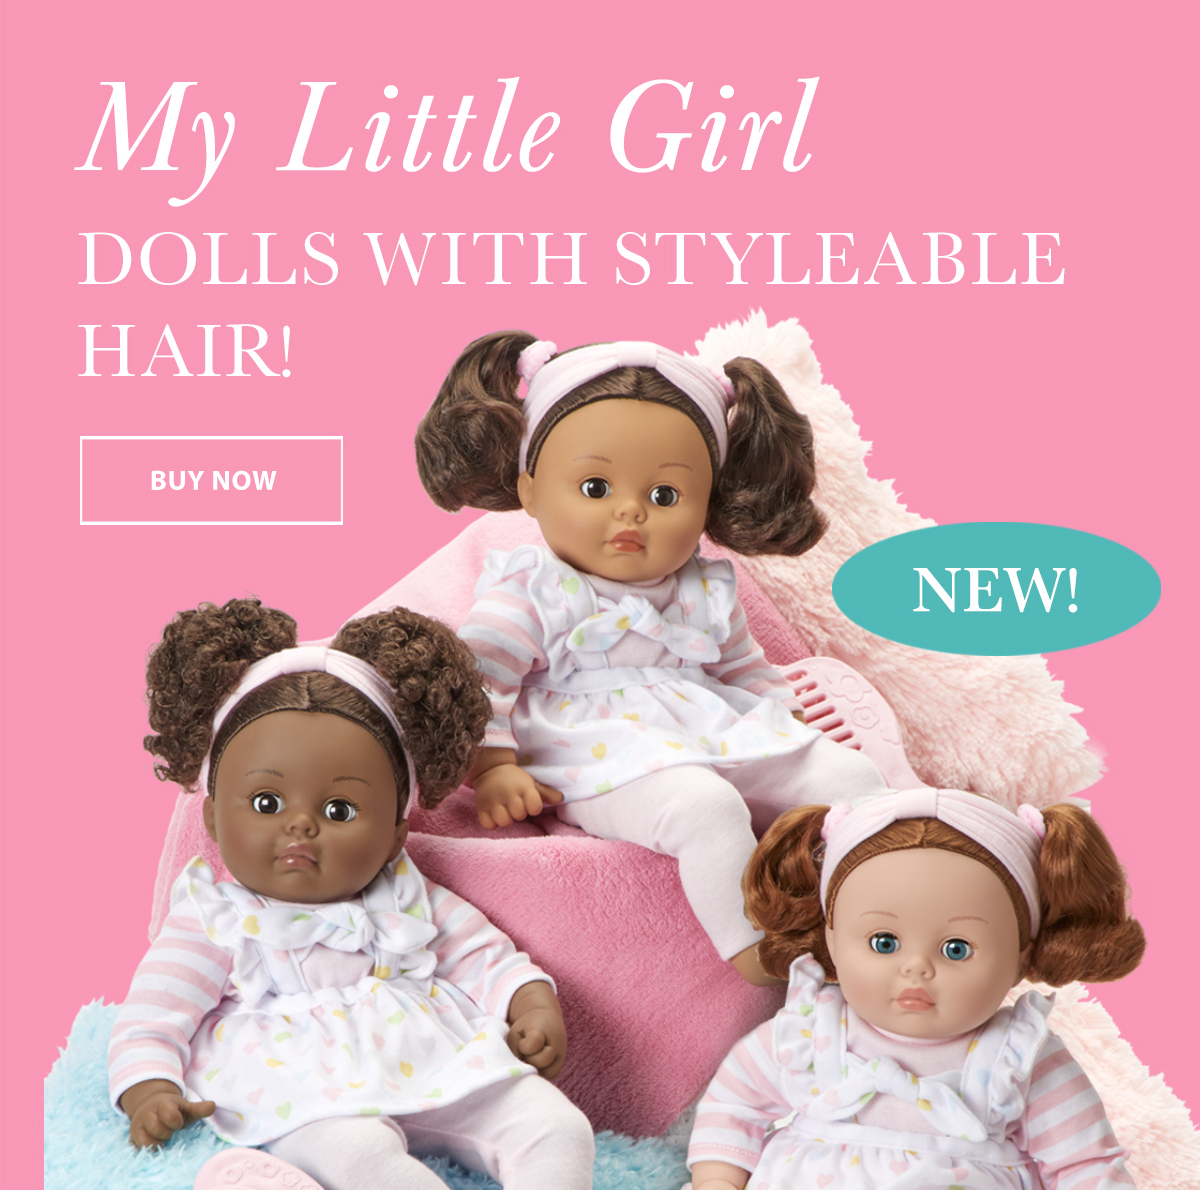 Click to shop for My Little Girl dolls